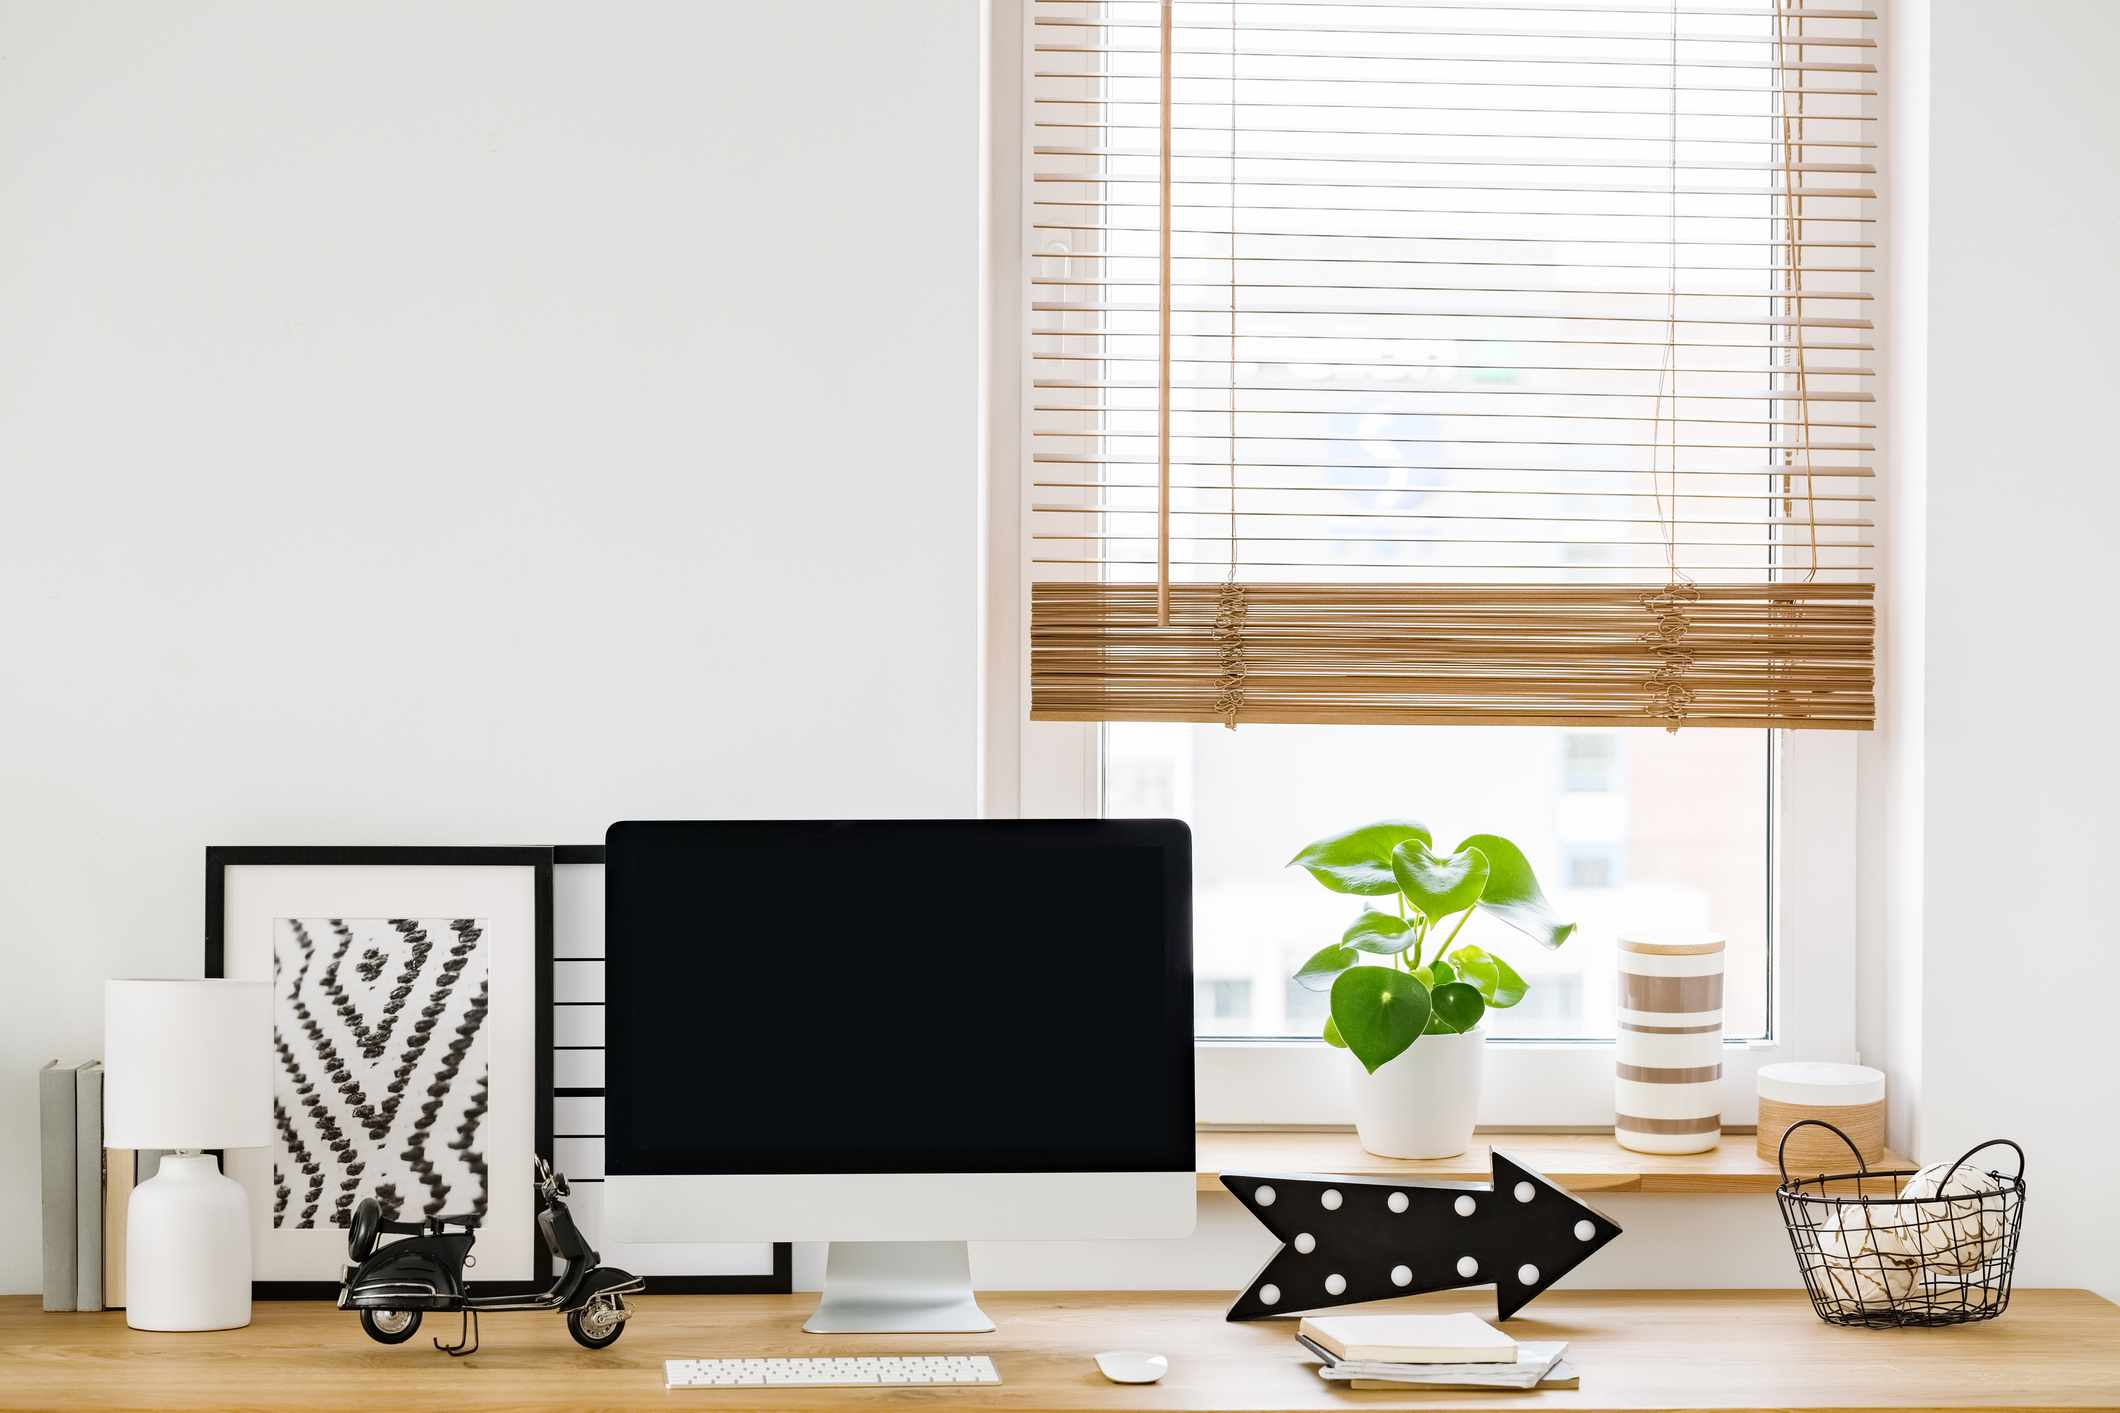 Close-up on a minimalist, white workspace interior by a window with a modern computer and simple decorations on a wooden desk